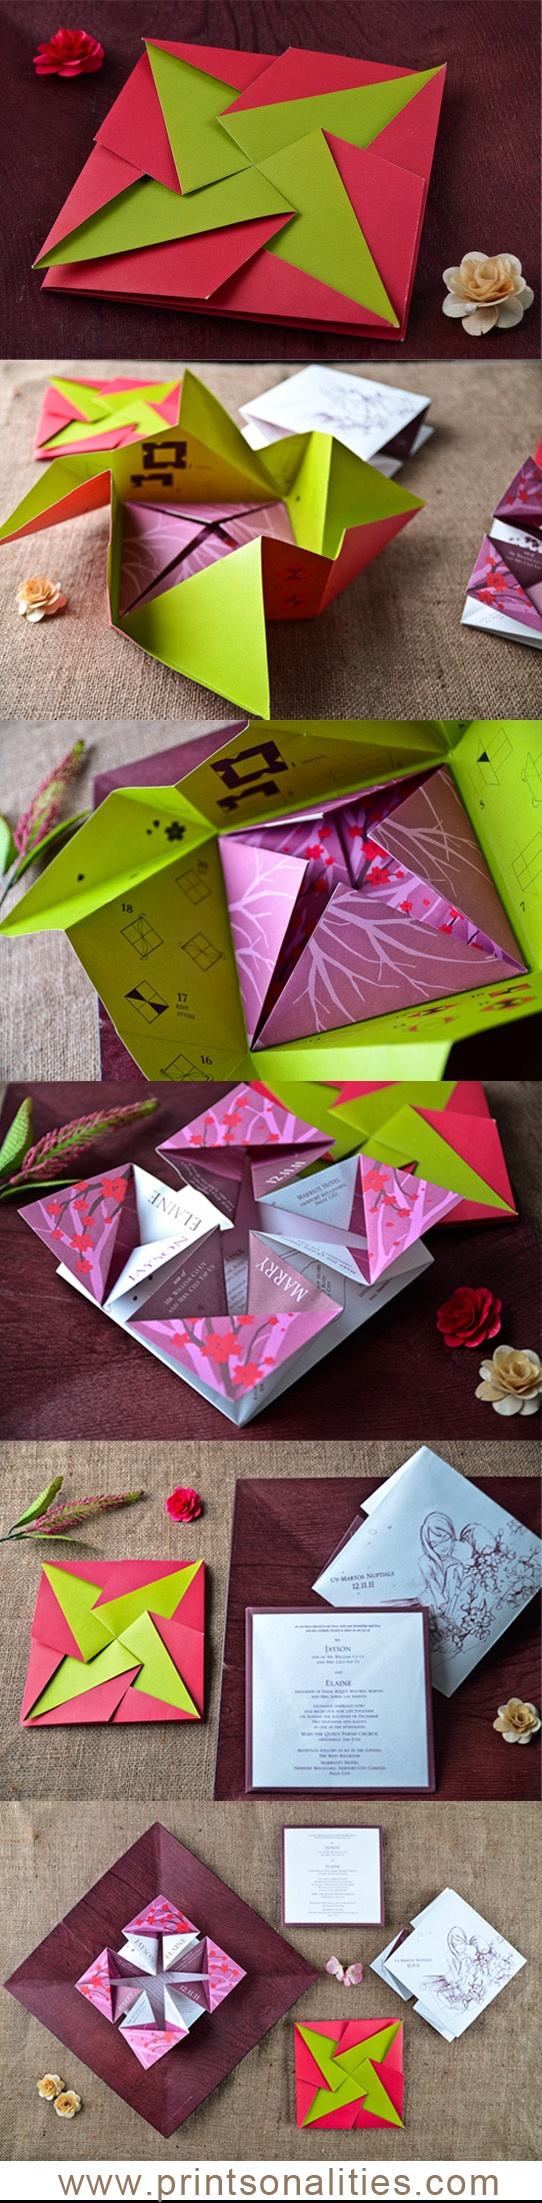 Fun origami wedding invitation by www.printsonalities.com -- wondering on money....and time...hmmm. It'd be cool, but is it worth it if they're just gonna throw it away?